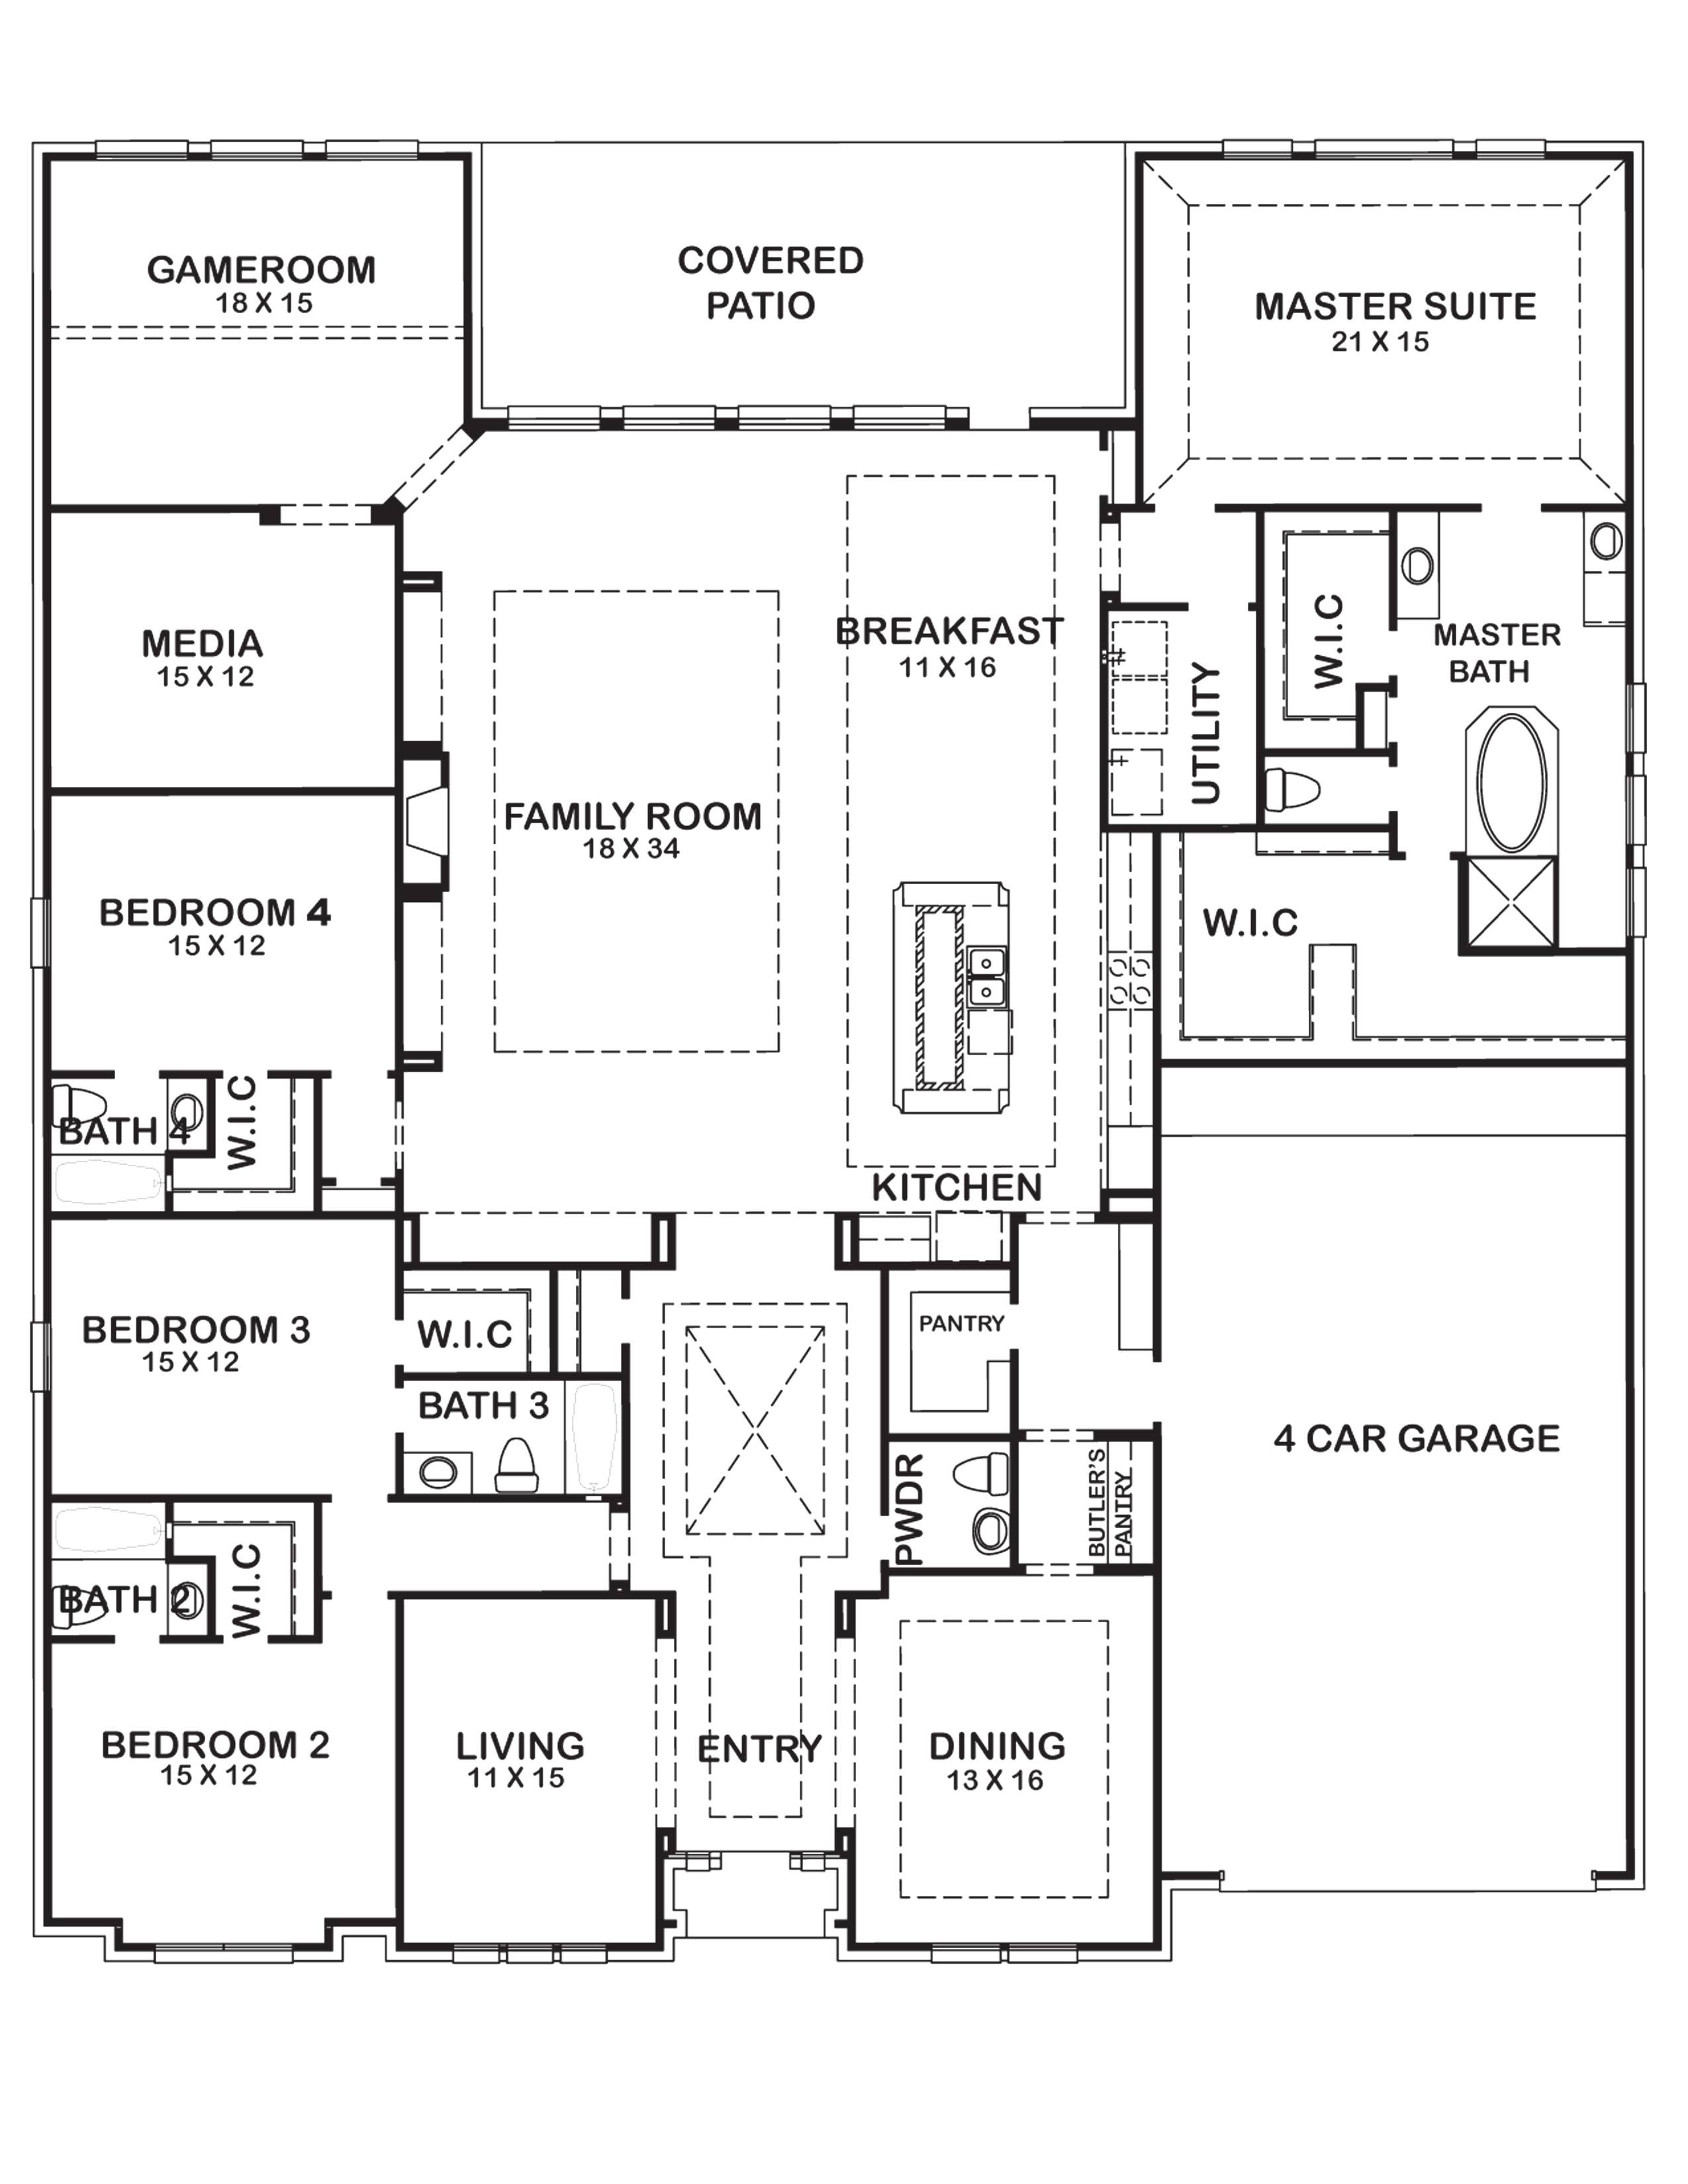 perry home floor plans fresh perry homes floor plans houston thoughtyouknew